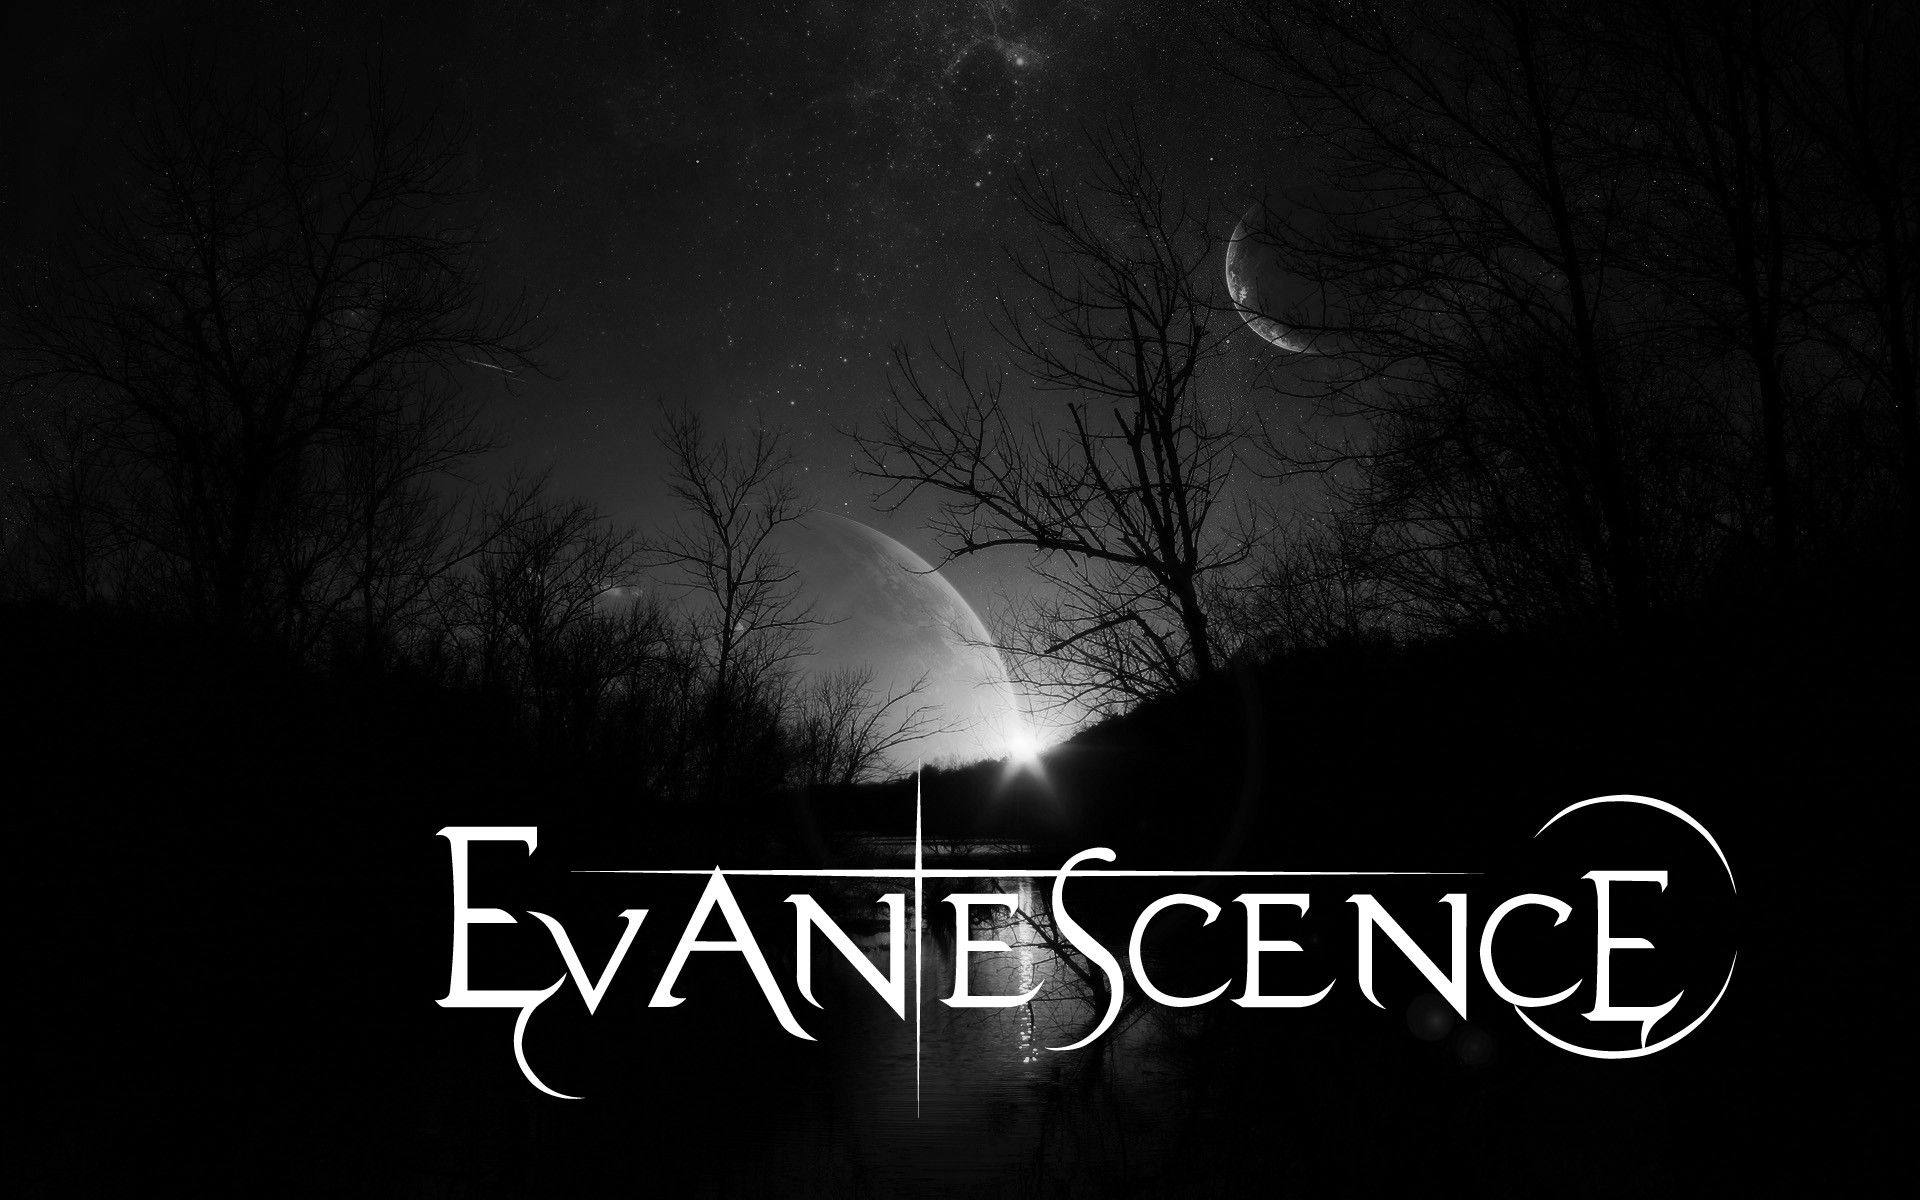 Evanescence Wallpapers HD 1920x1200